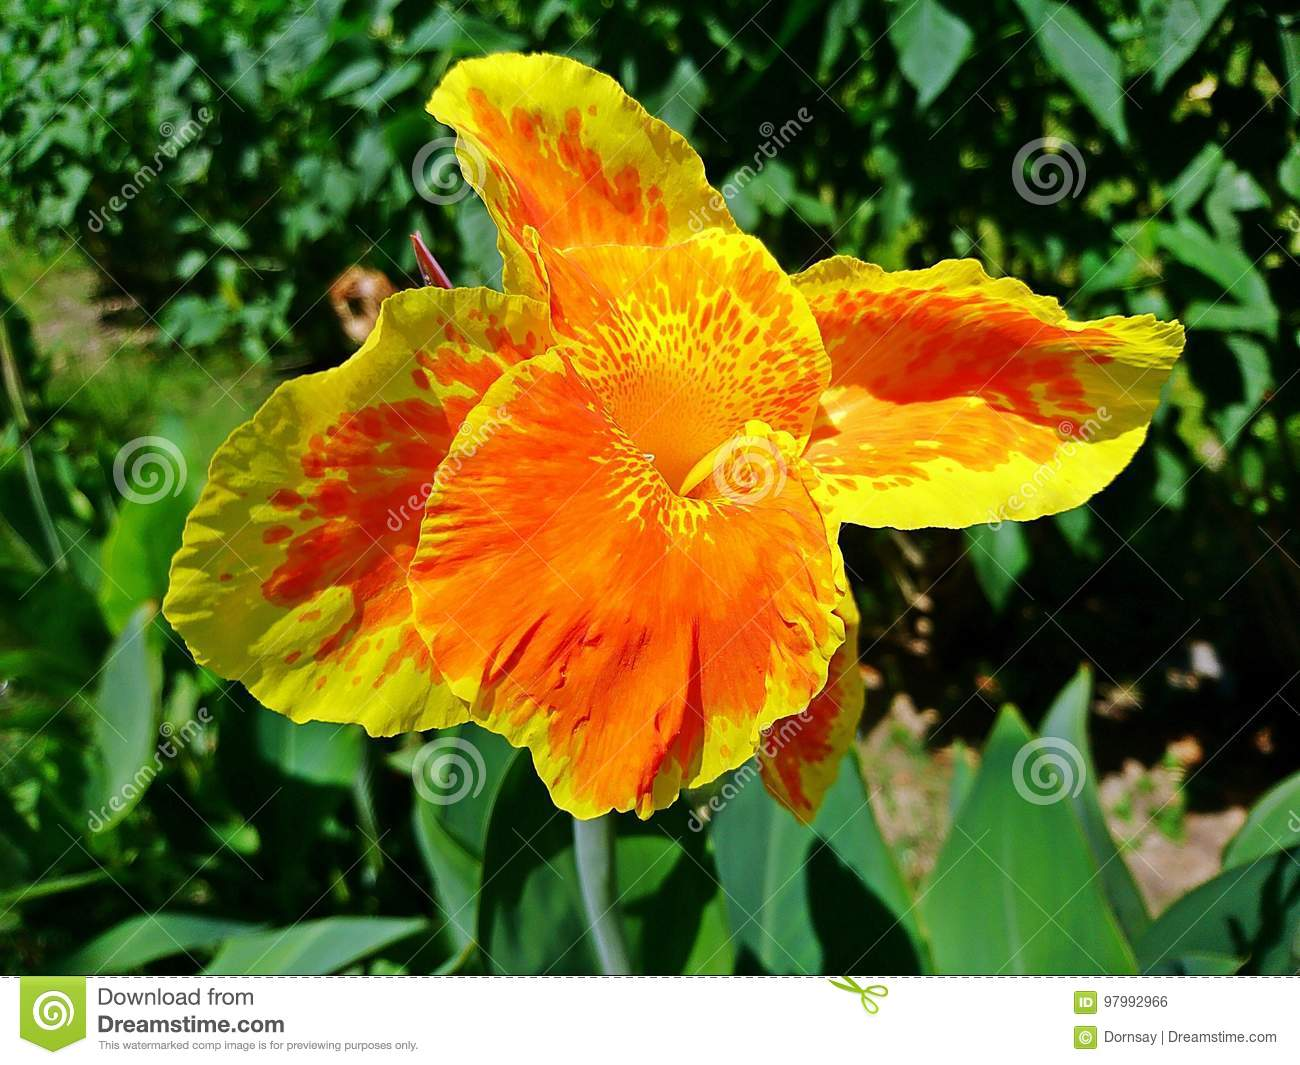 Orange And Yellow Canna Flowers Plants With Green Leaves Stock Photo